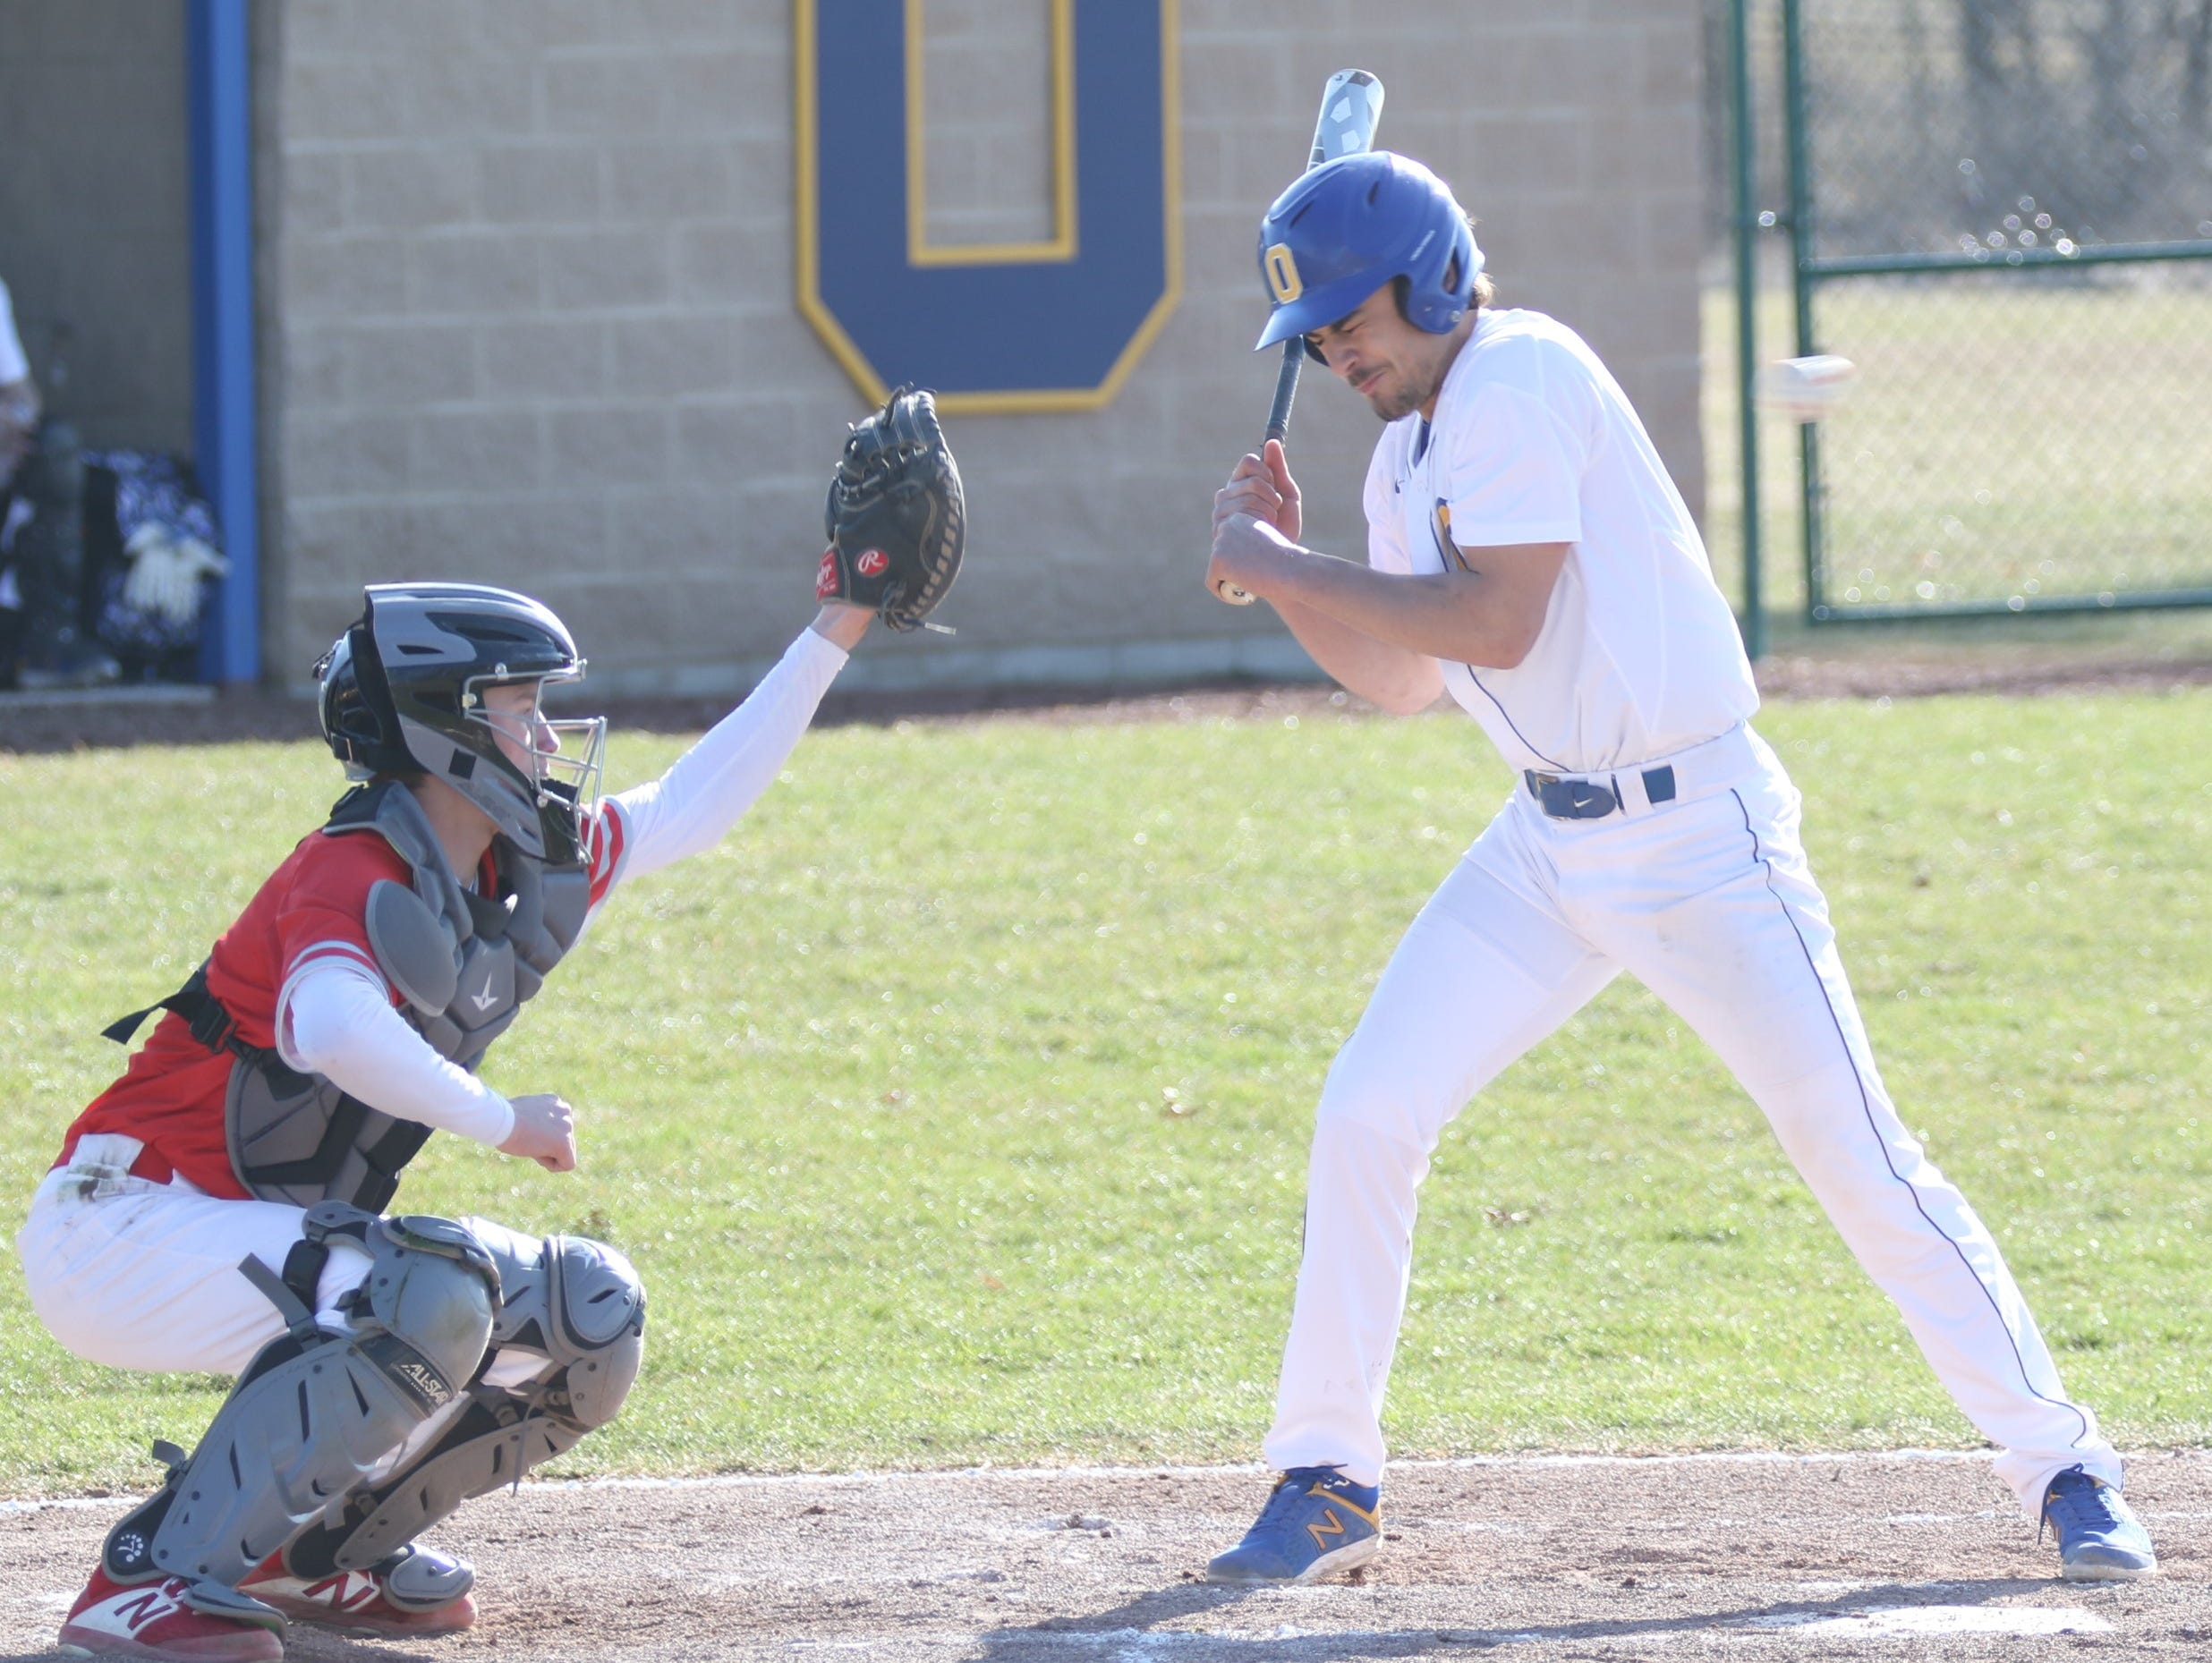 GALLERY: Shelby at Ontario Baseball